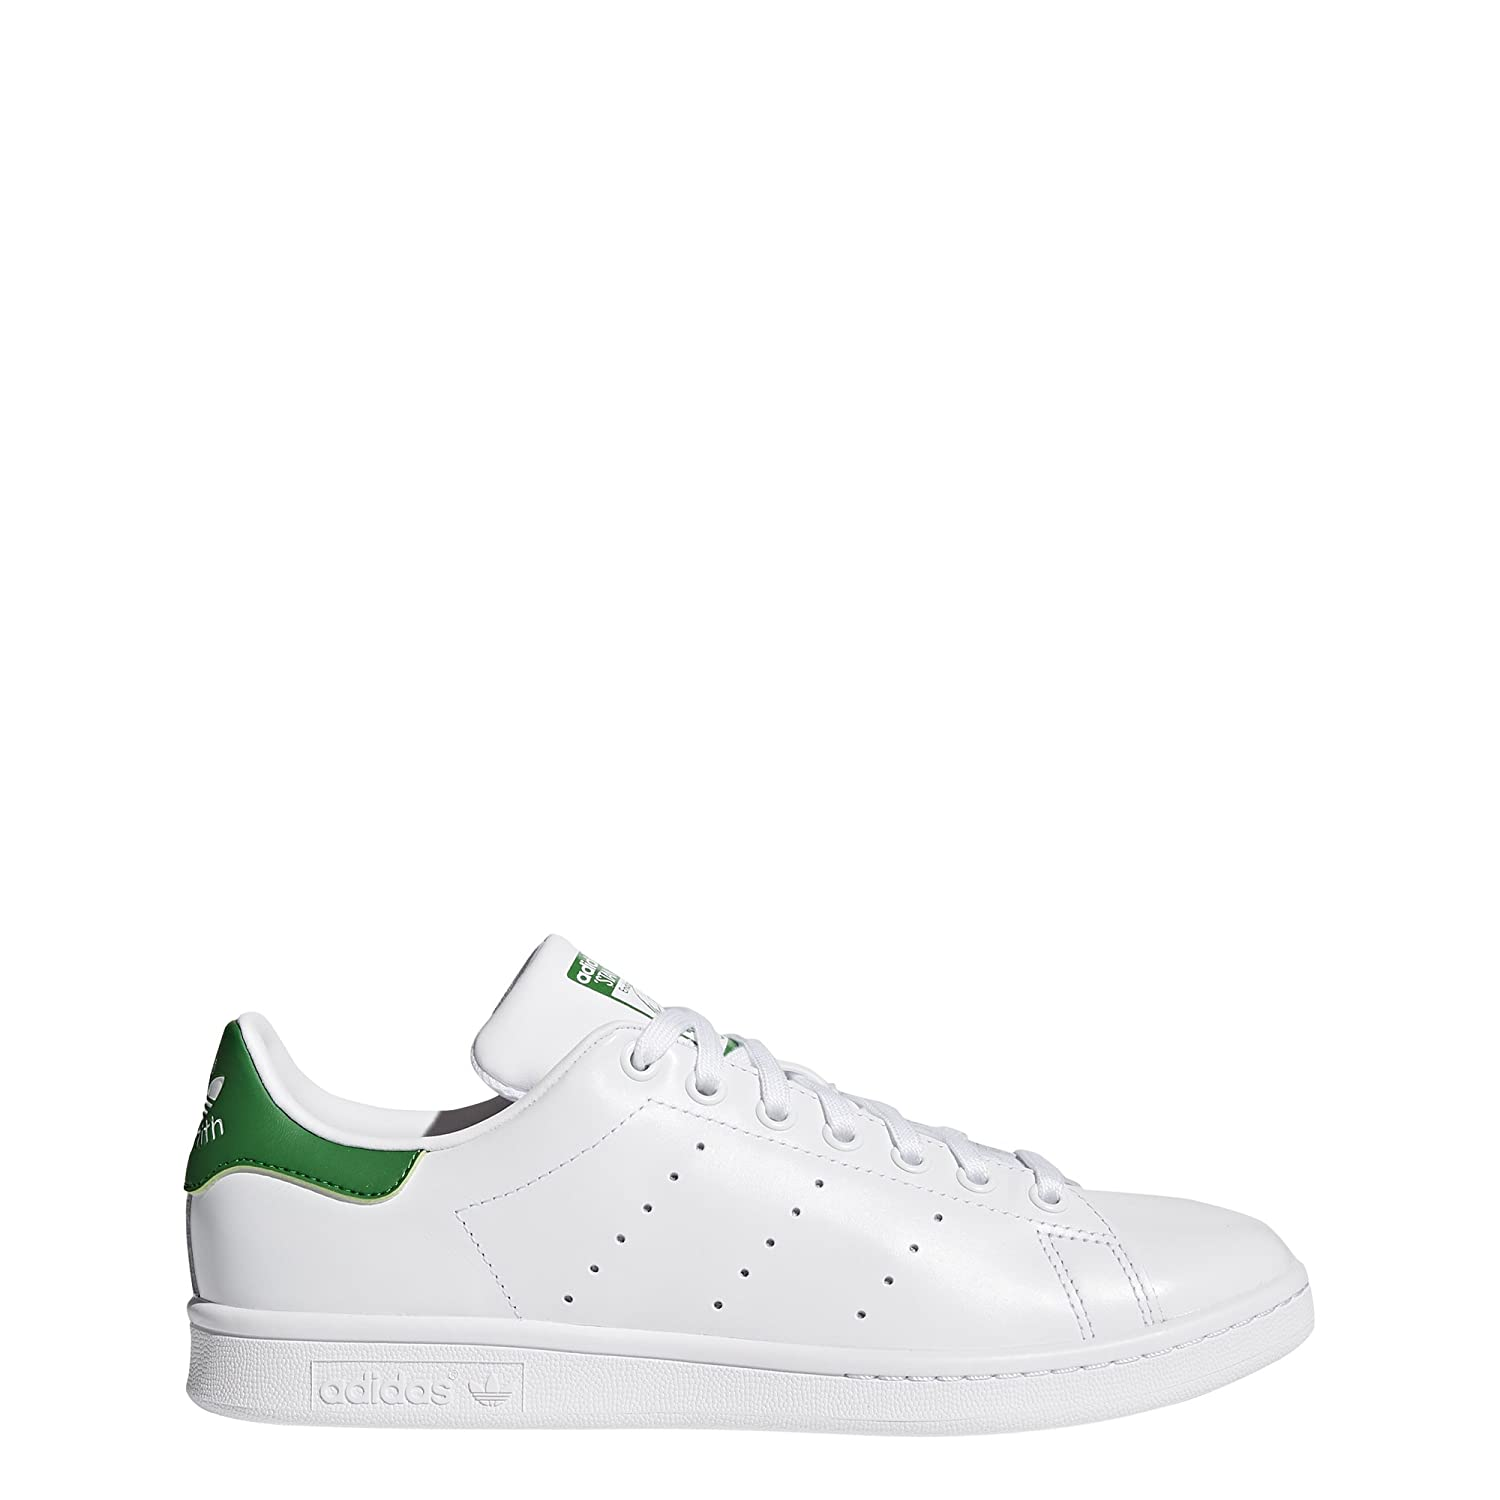 adidas Unisex-Erwachsene Stan Smith M20324 Basketballschuhe  42 2/3 EU|Wei? (Running White Ftw/Running White/Fairway)